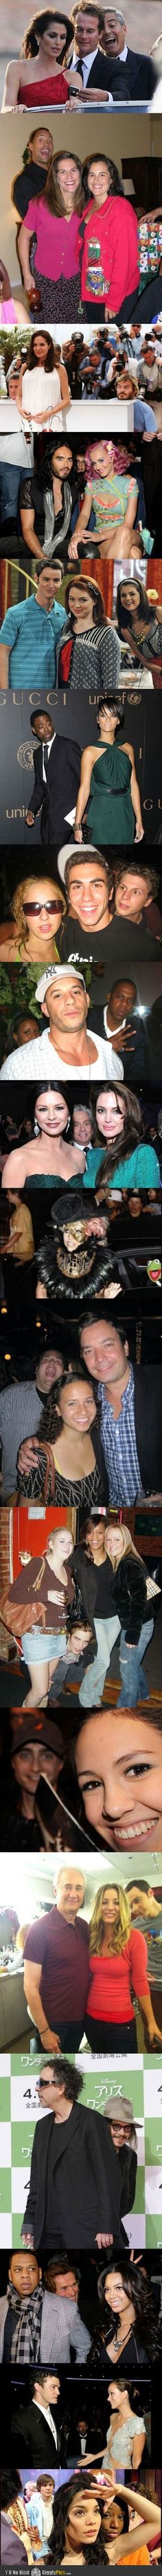 I love that celebrities photobomb too!